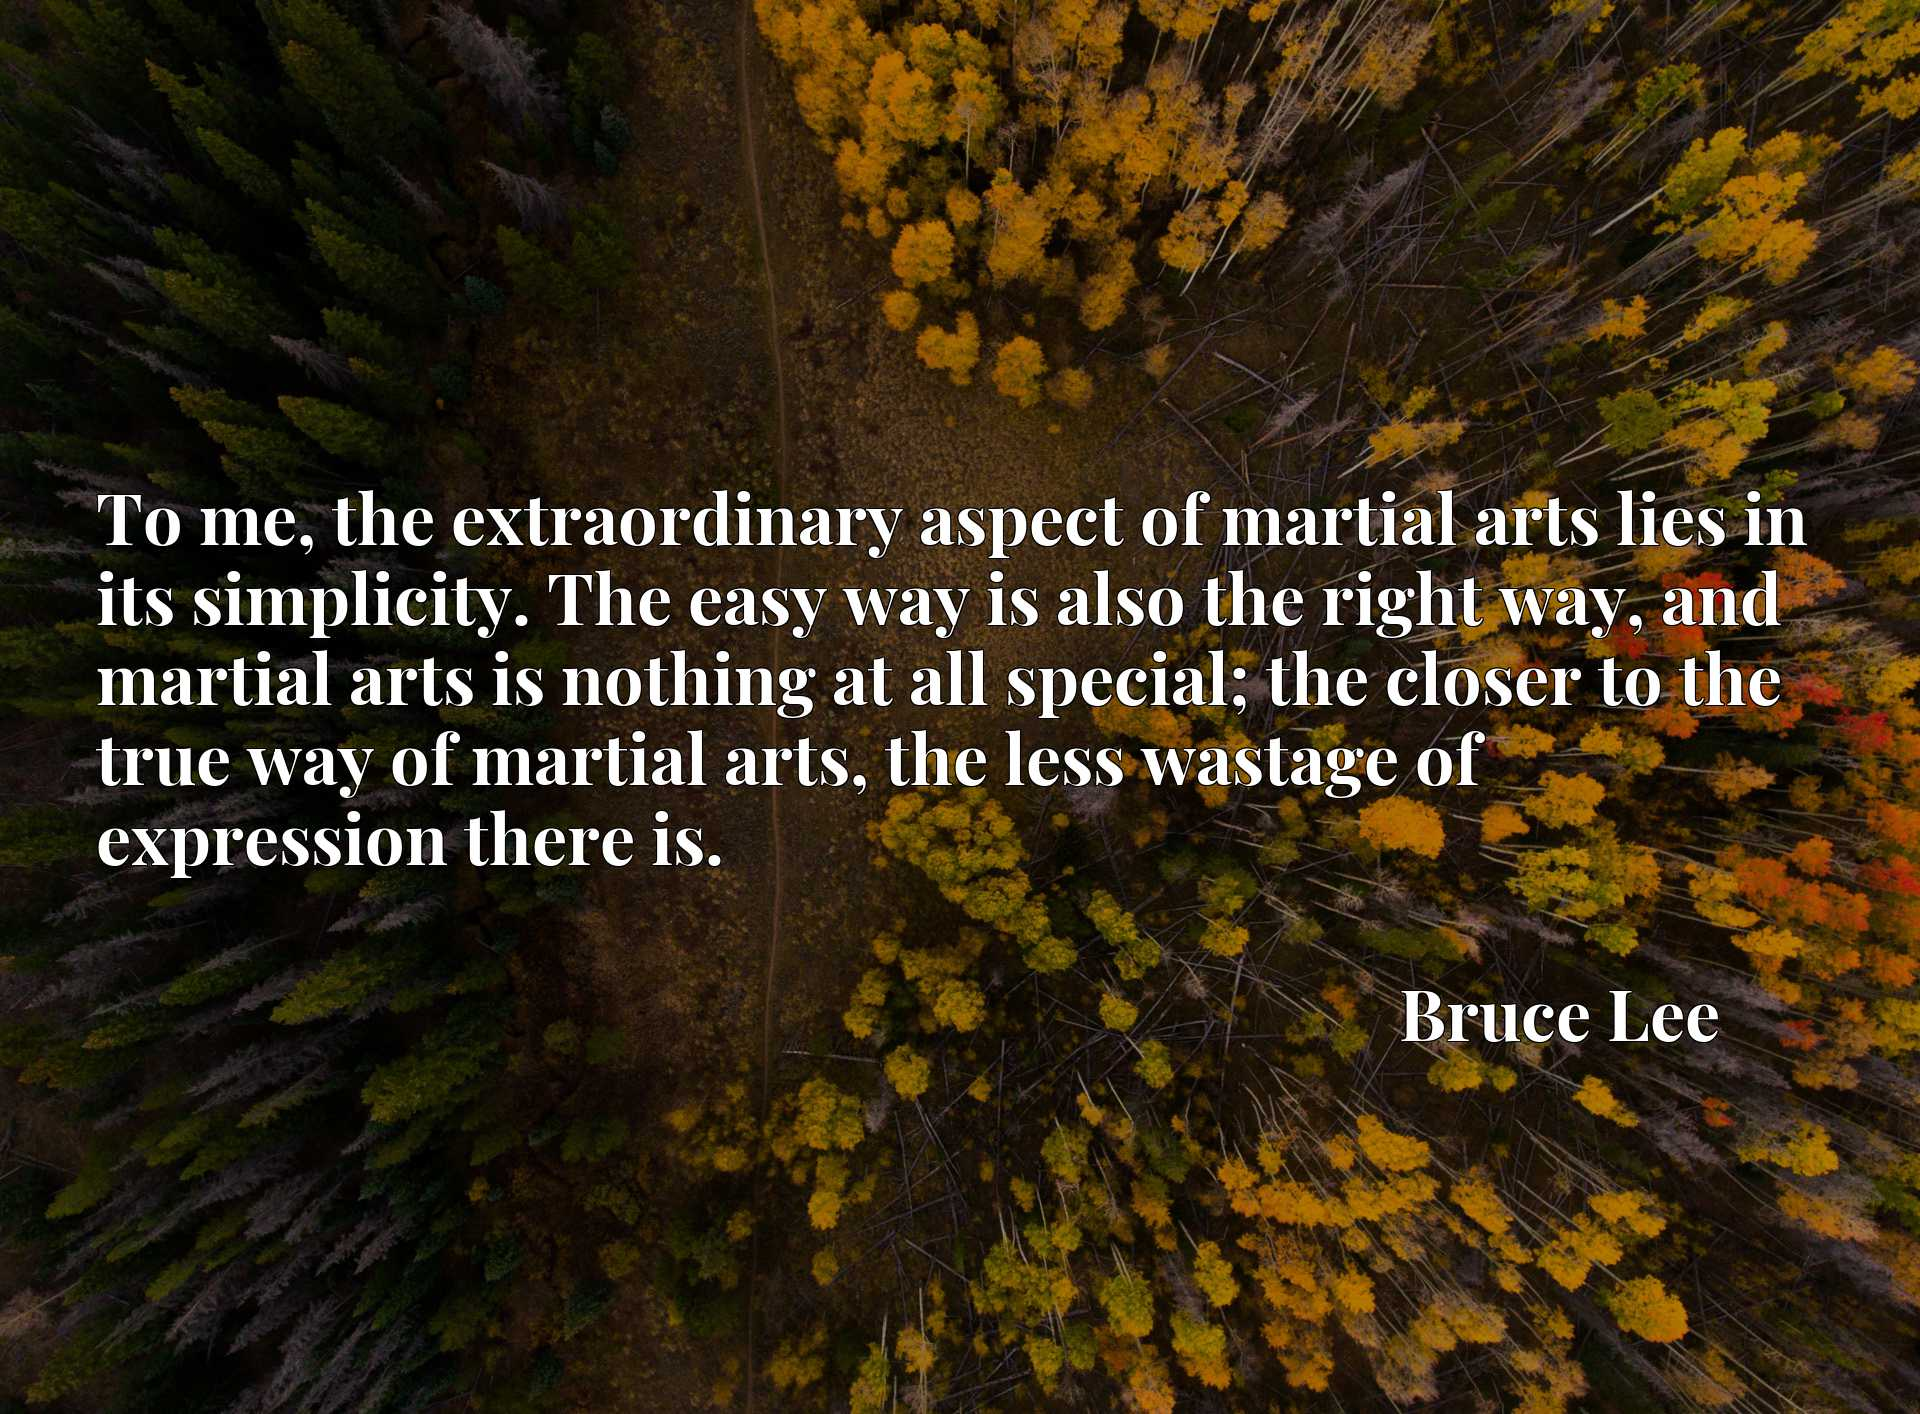 To me, the extraordinary aspect of martial arts lies in its simplicity. The easy way is also the right way, and martial arts is nothing at all special; the closer to the true way of martial arts, the less wastage of expression there is.